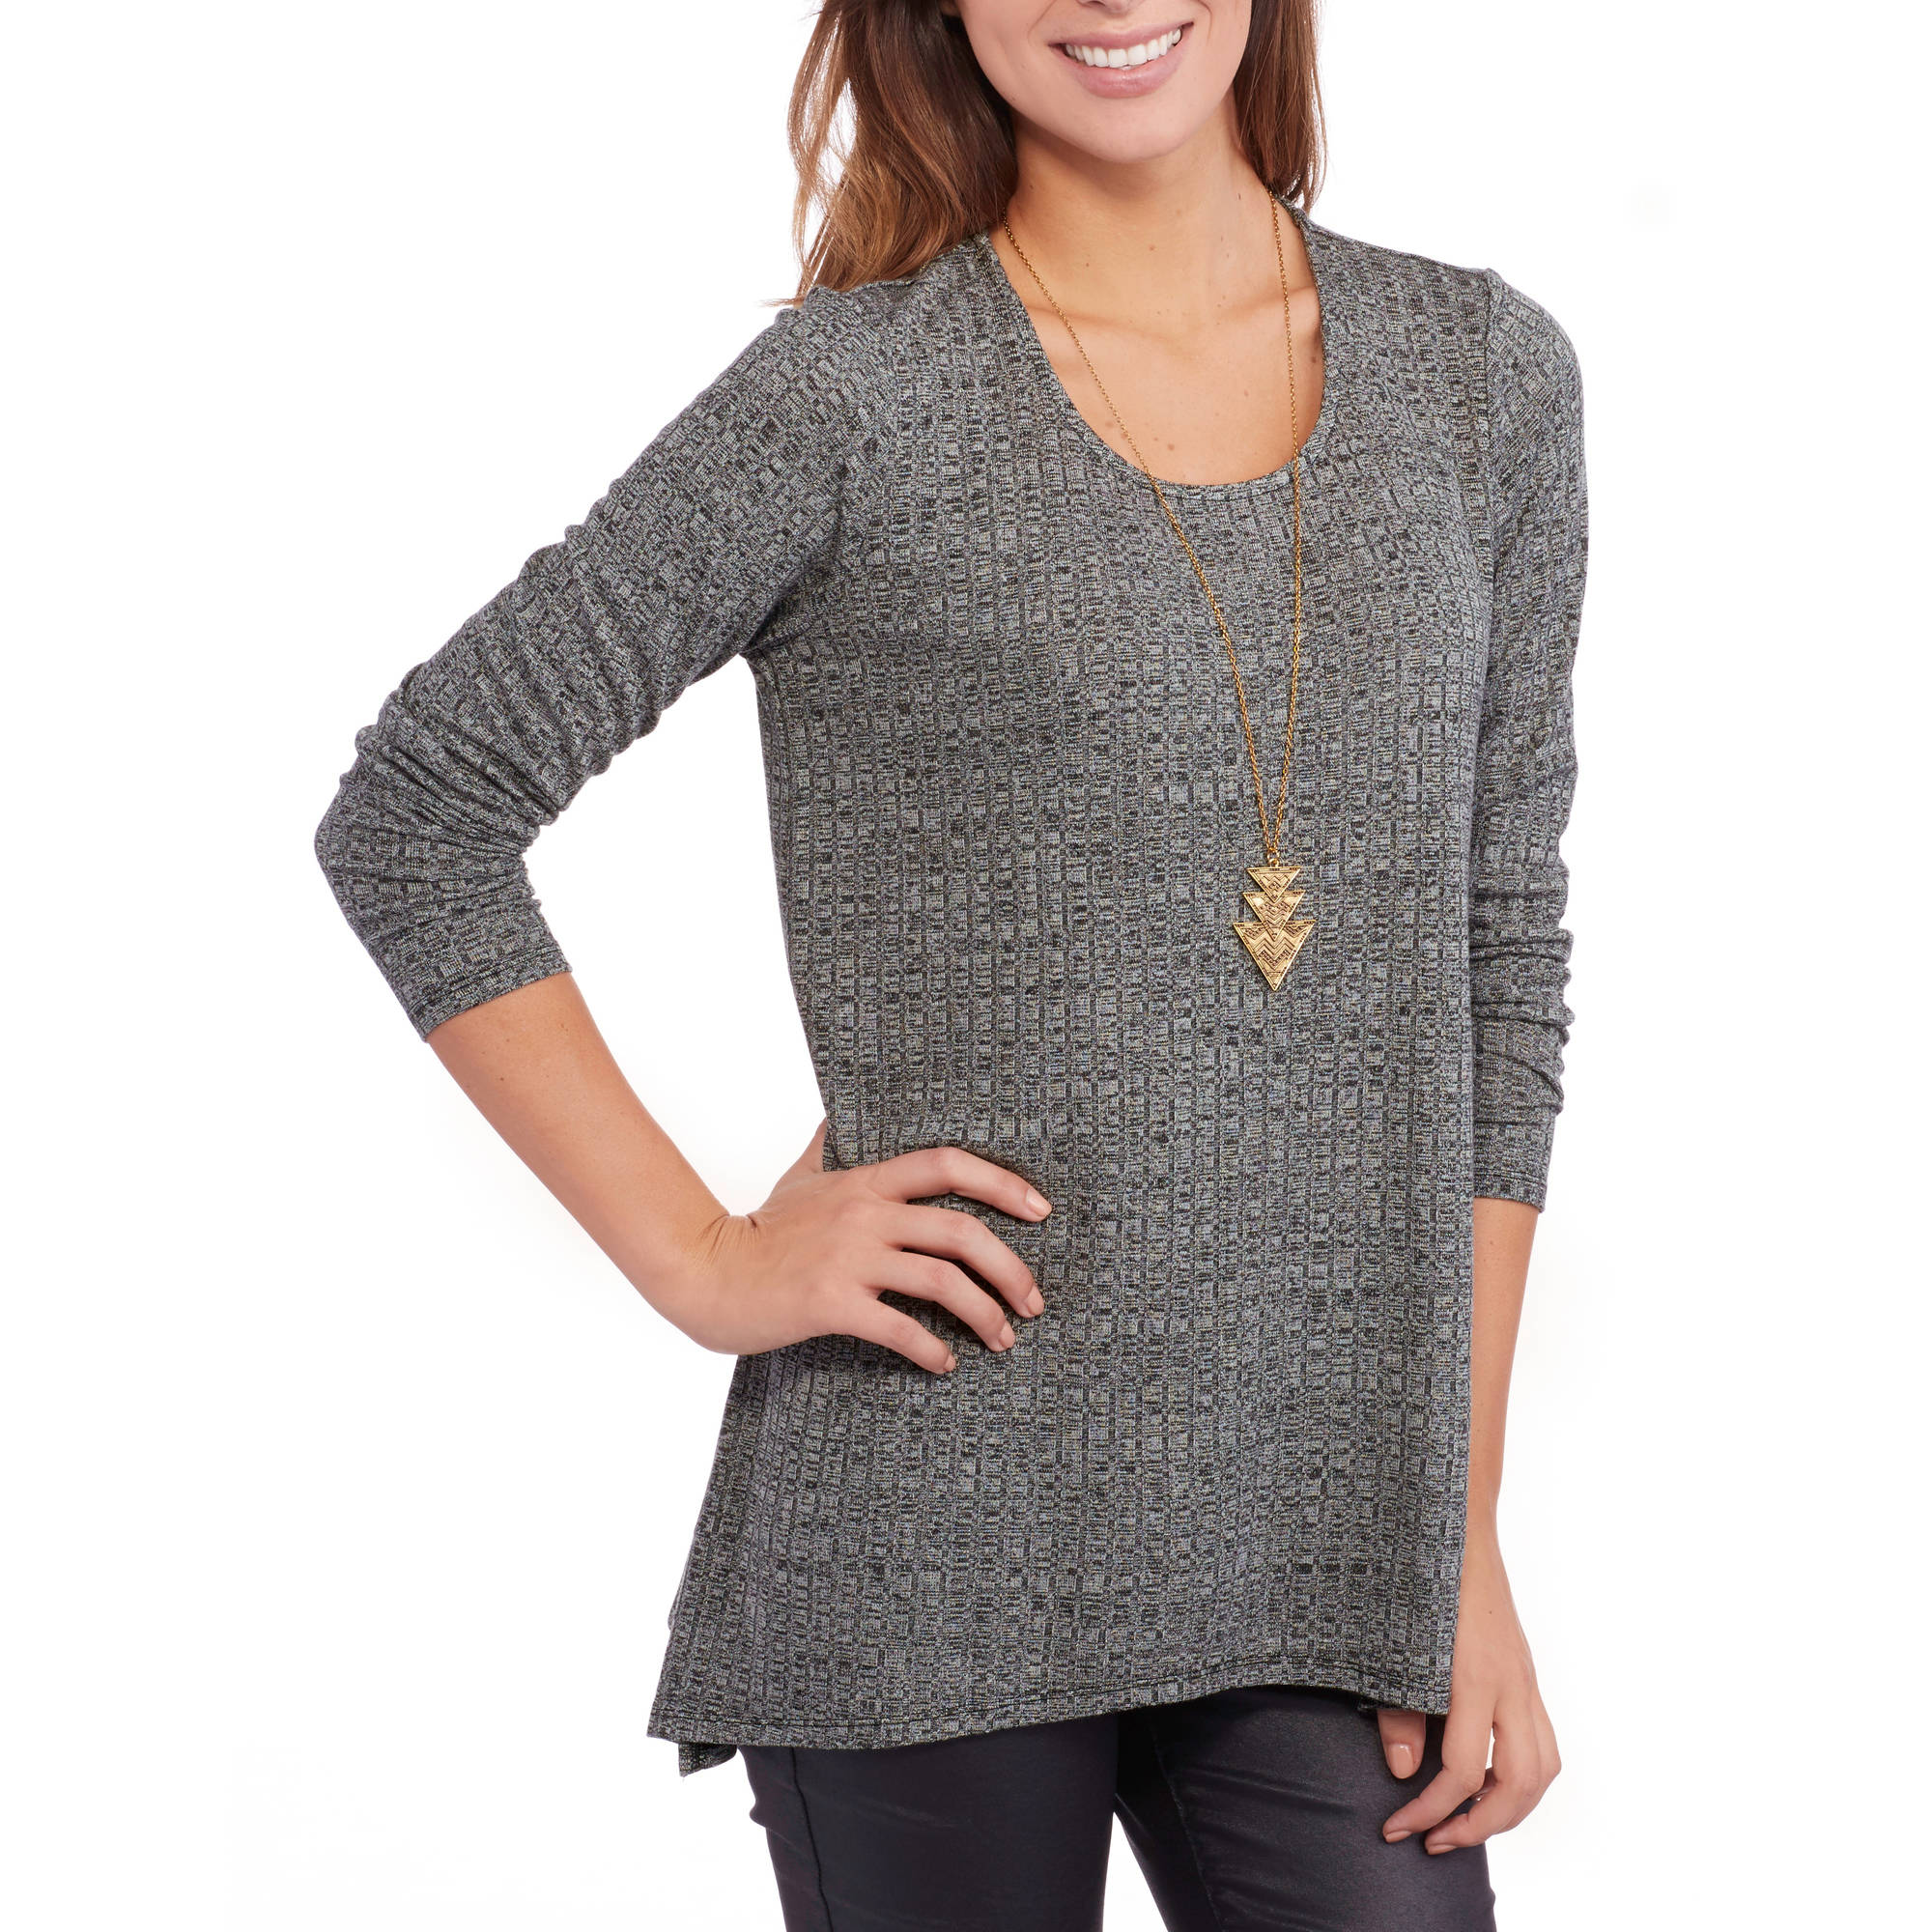 Women's 2-Fer Solid Long Sleeve T-Shirt with Necklace